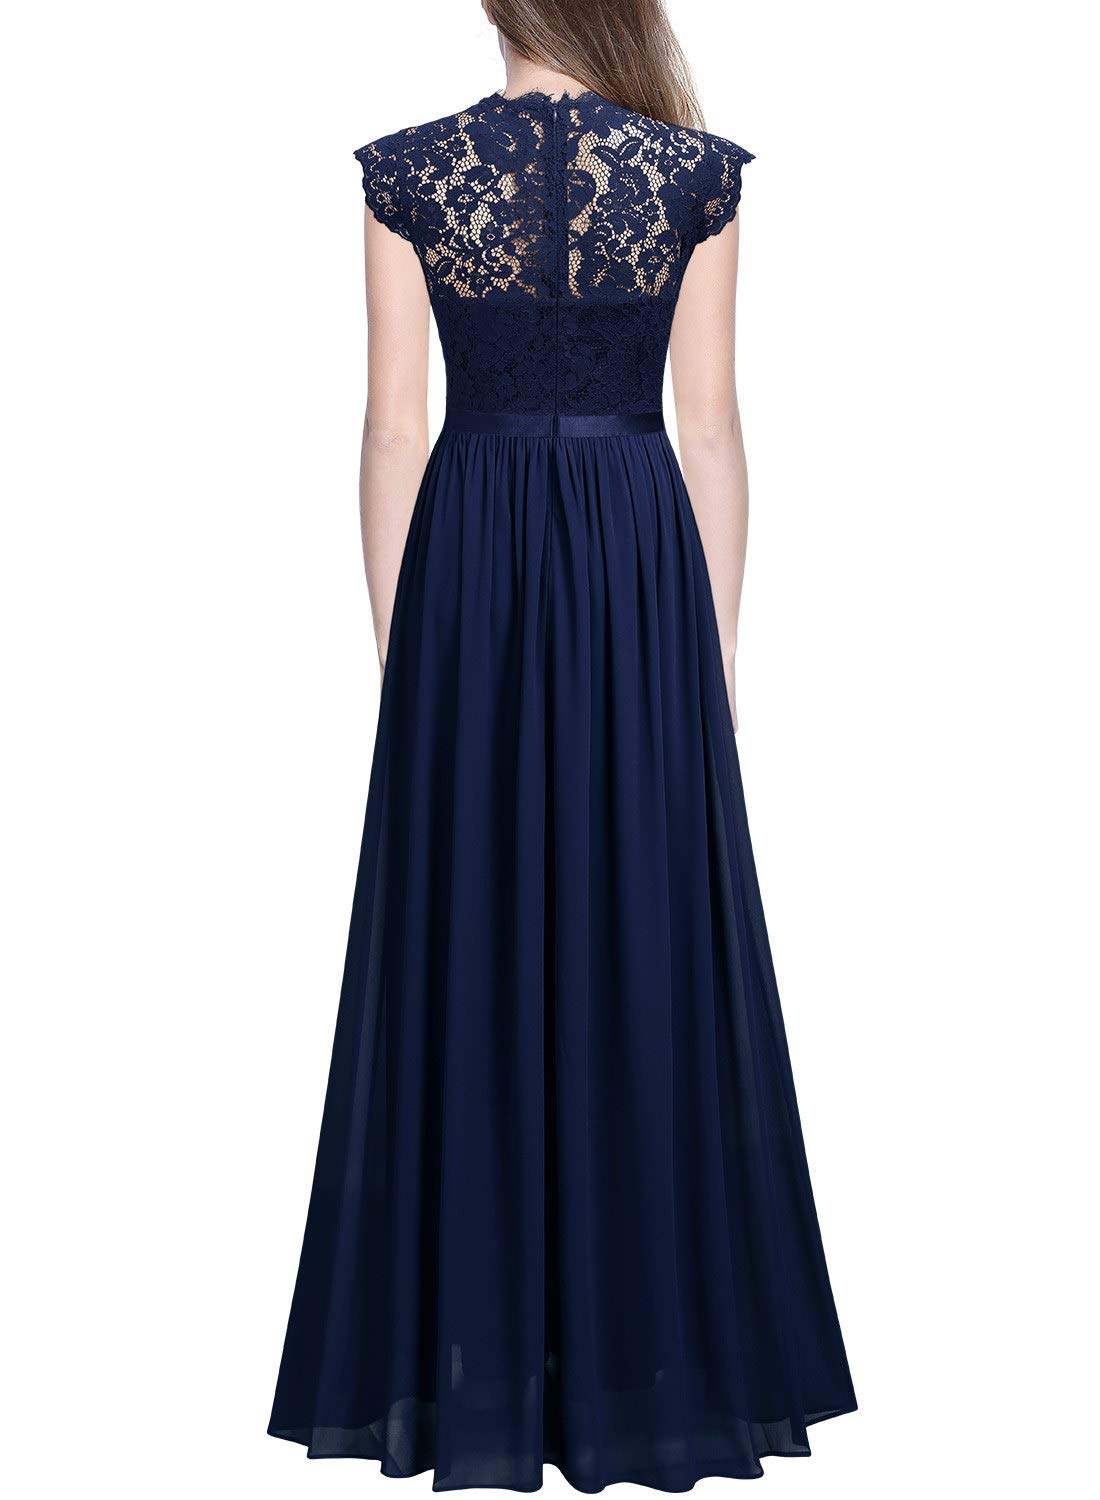 Miusol Women's Formal Floral Lace Evening Party Maxi Dress (Large, Navy Blue)